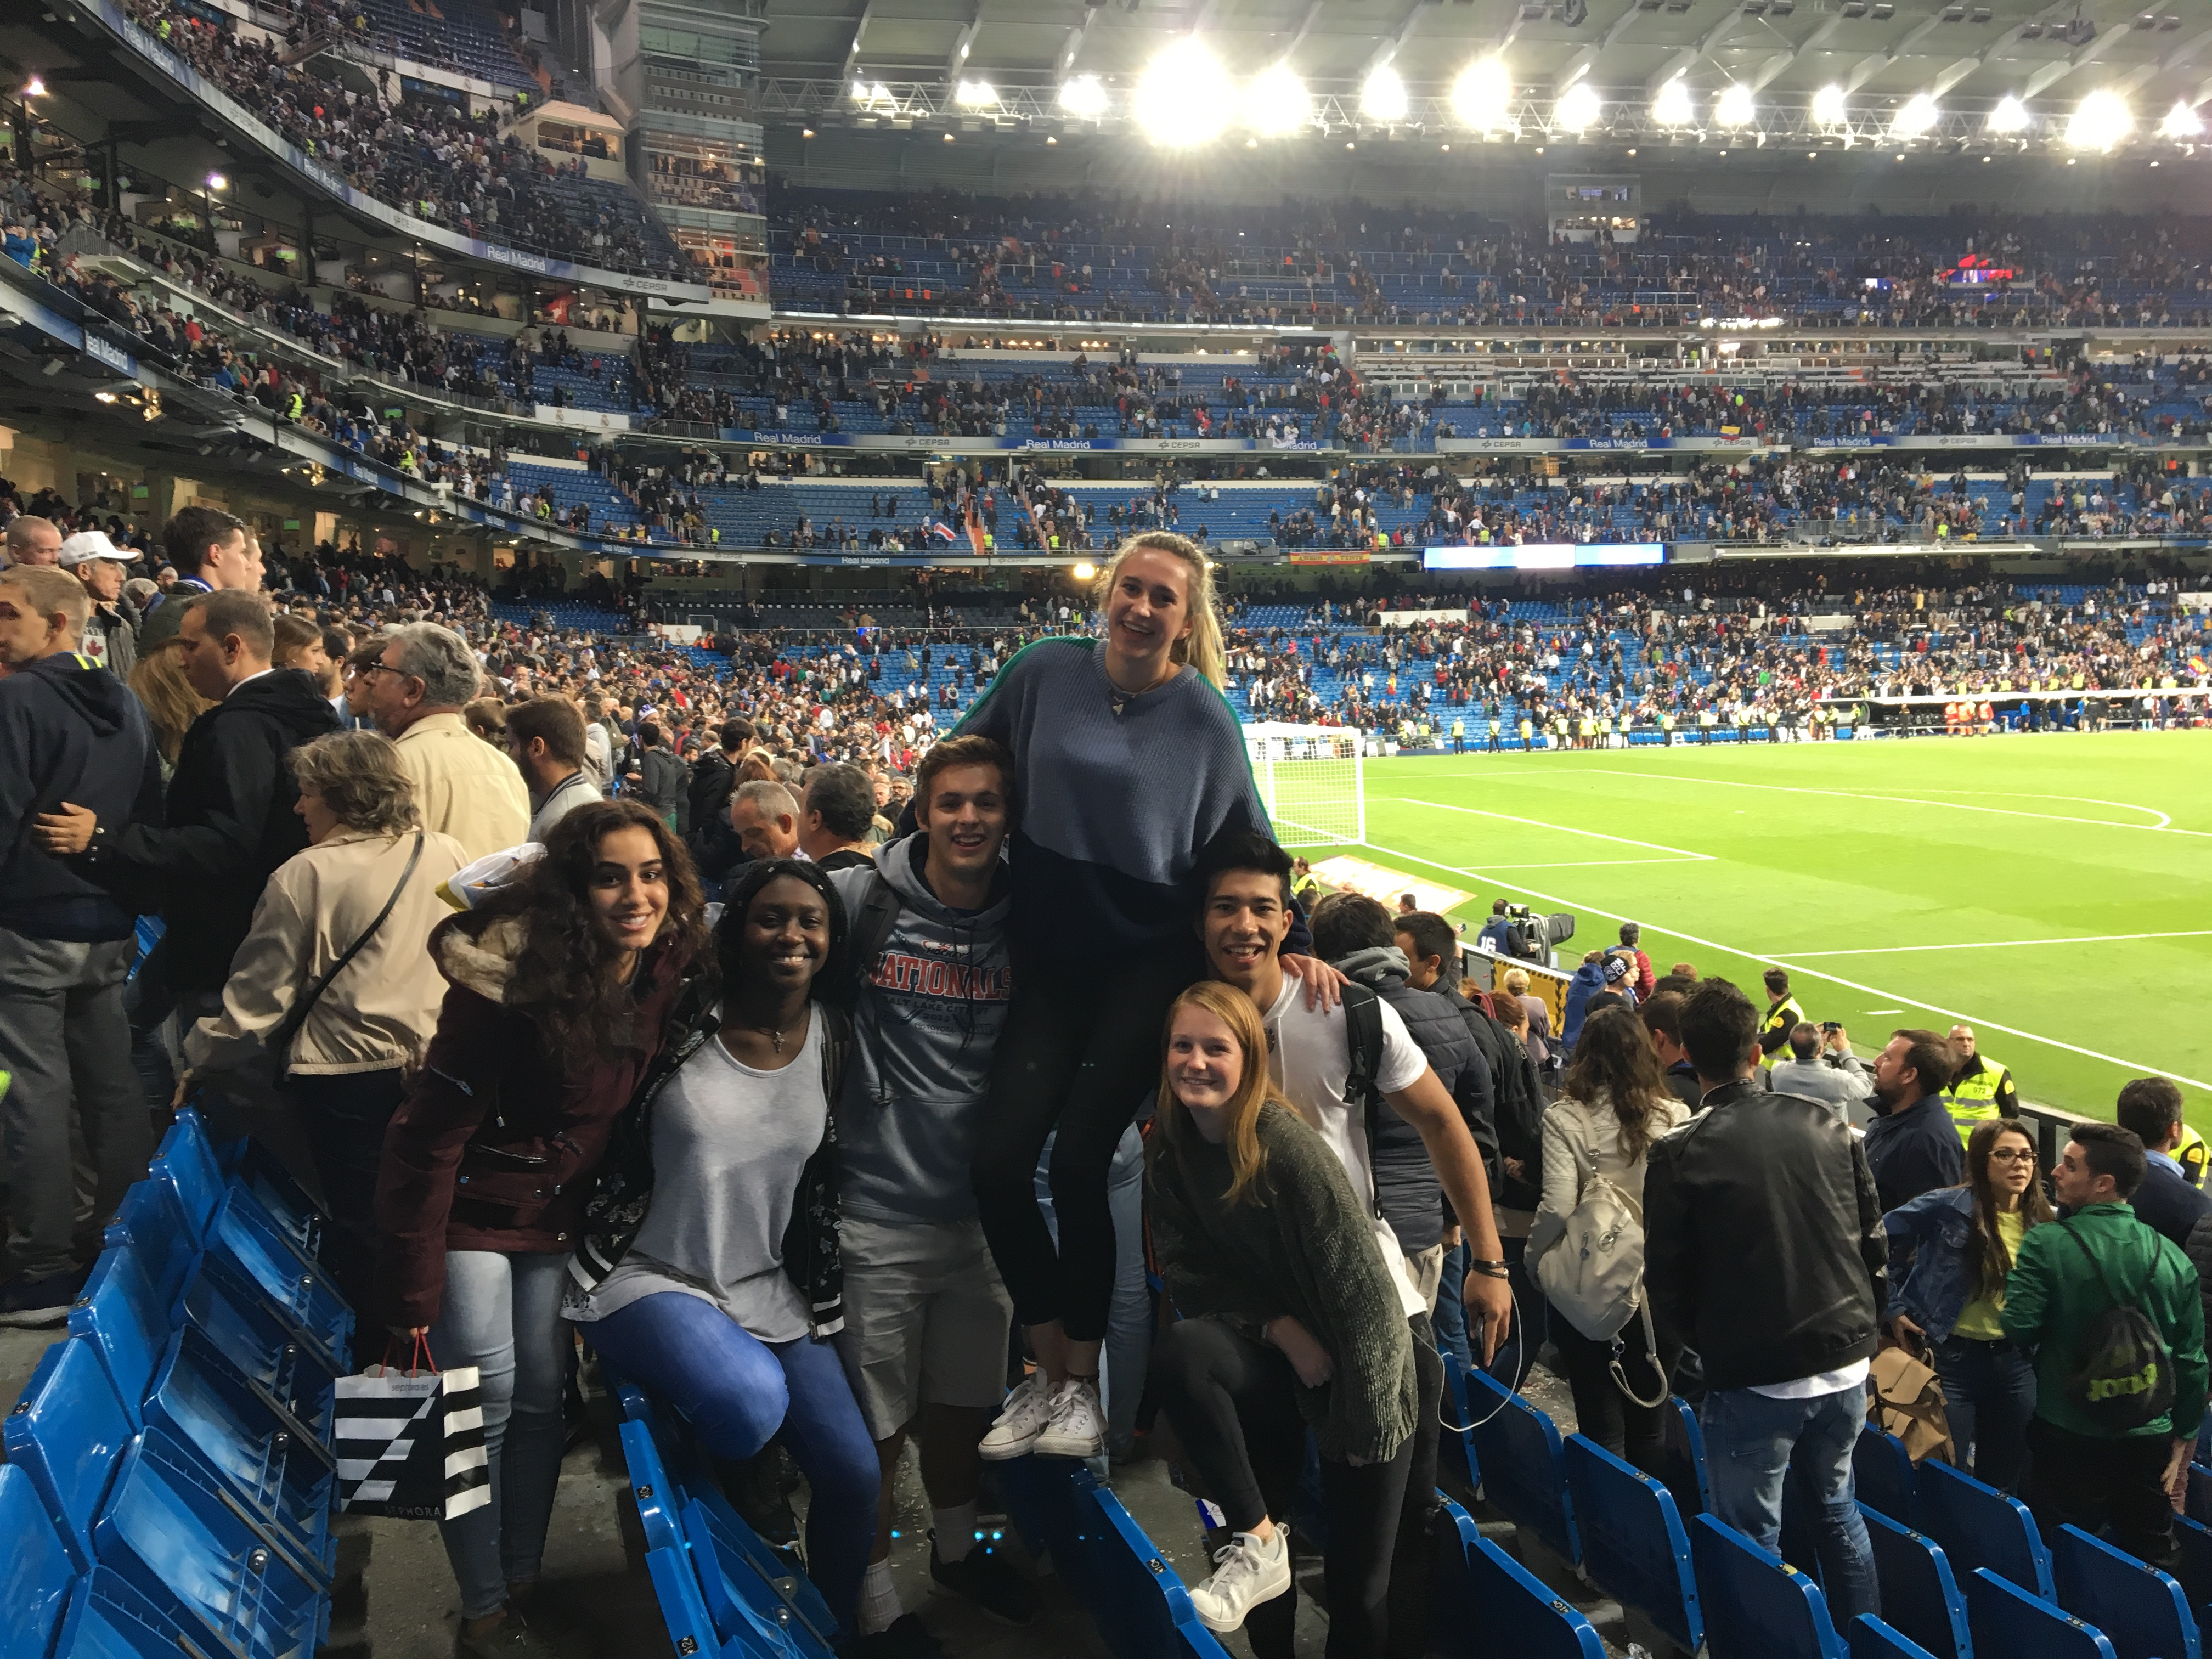 Proctor en Segovia watches a Real Madrid match